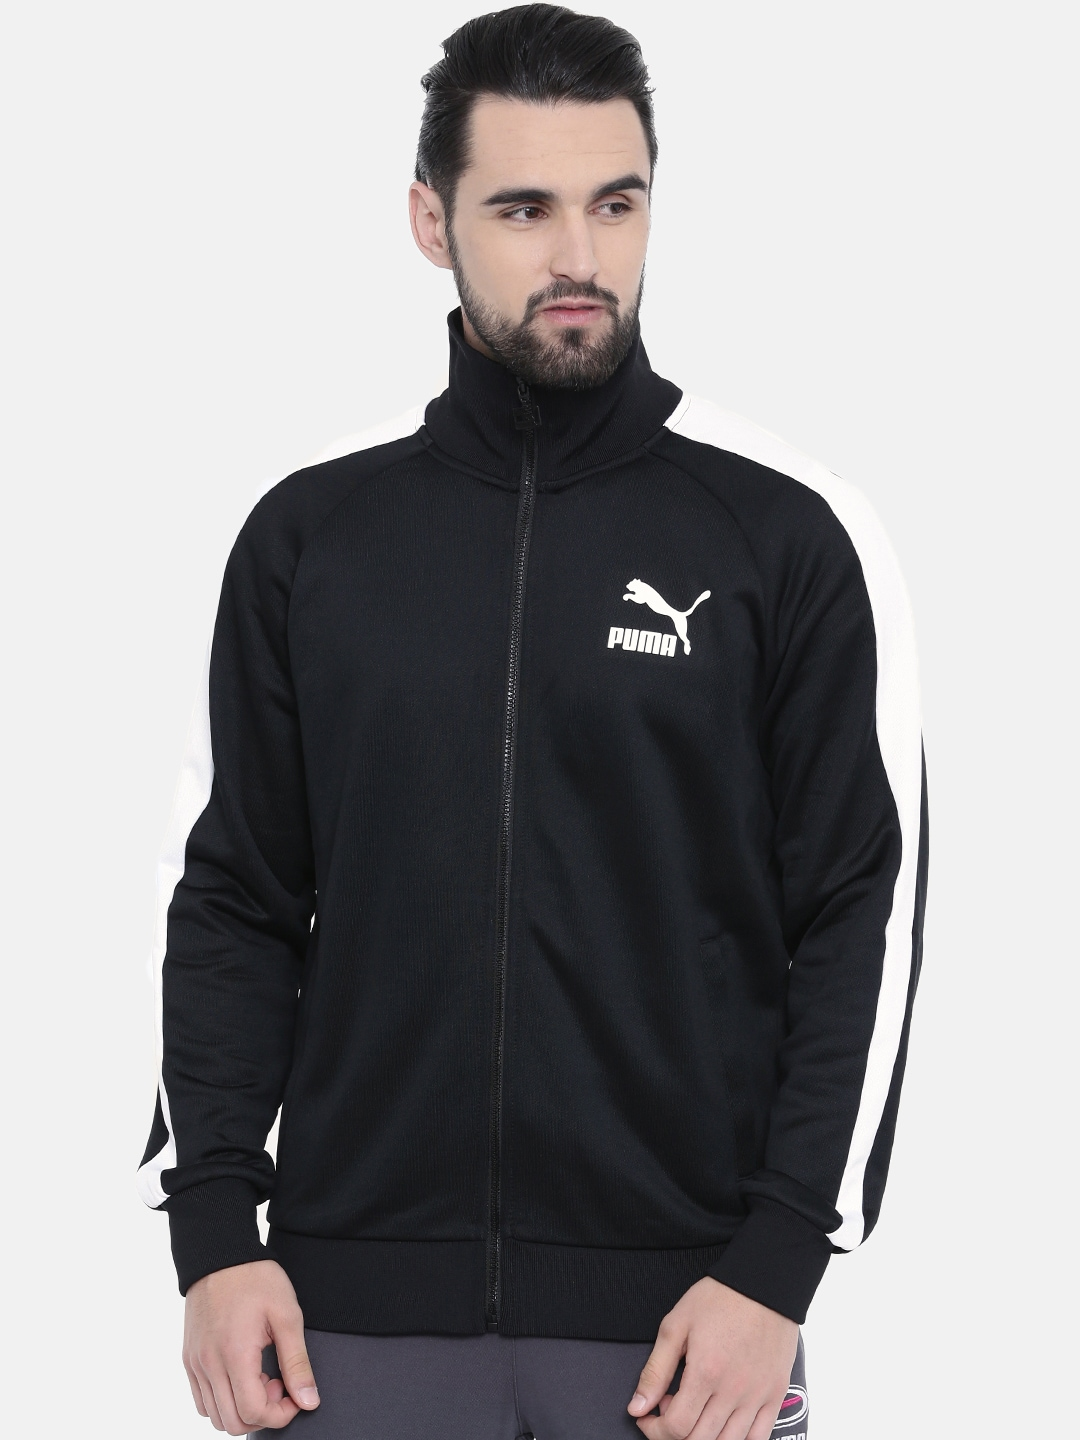 c9529cc2c6bb Men s Puma Jackets - Buy Puma Jackets for Men Online in India